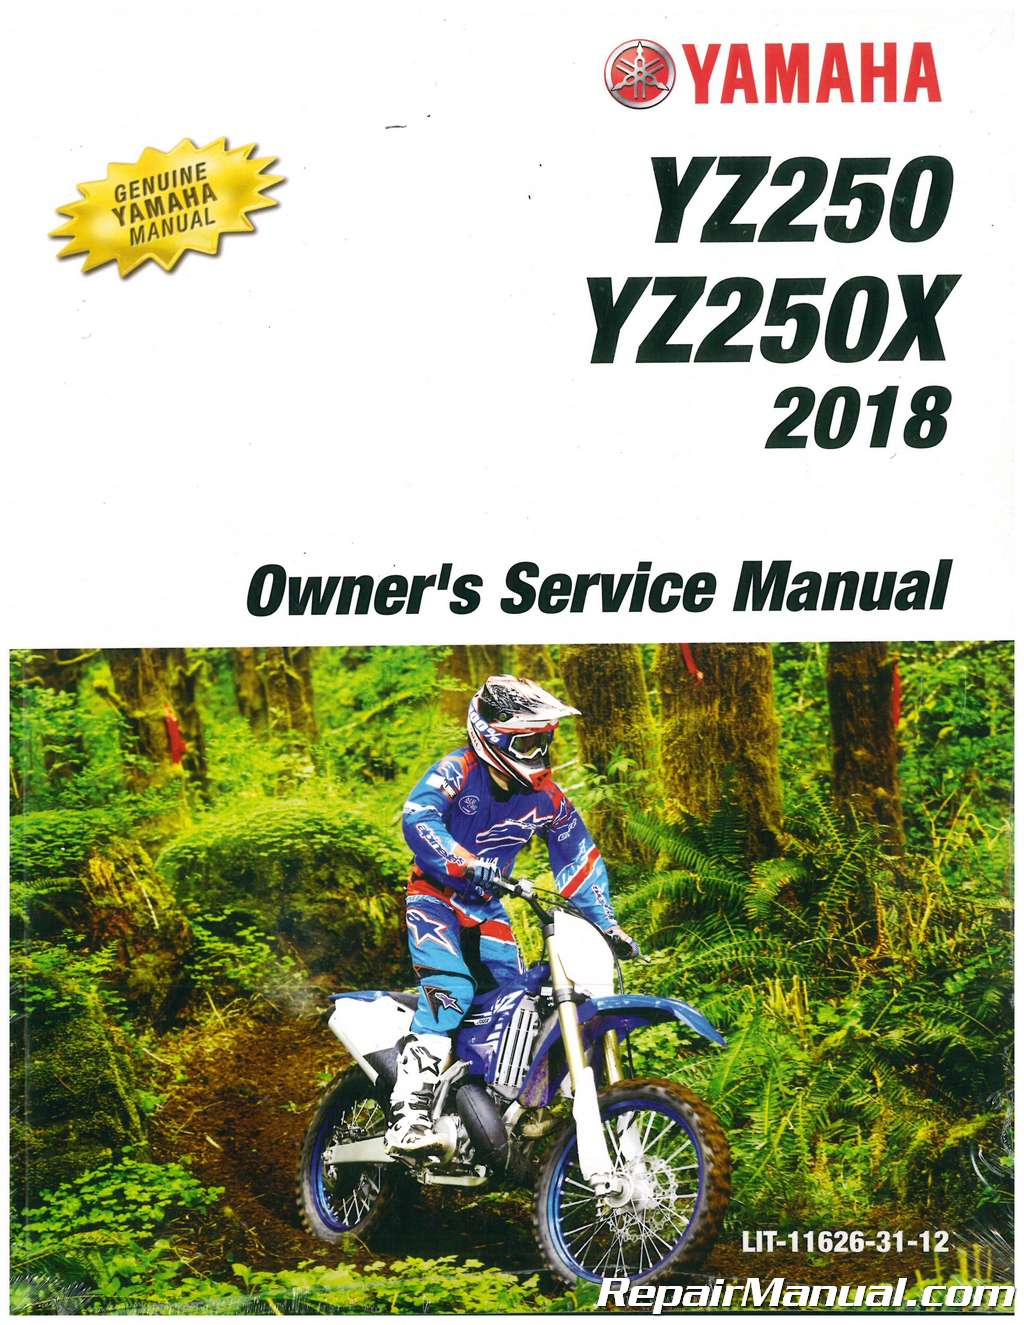 2018 Yamaha Yz250 Yz250x Motorcycle Owners Service Manual